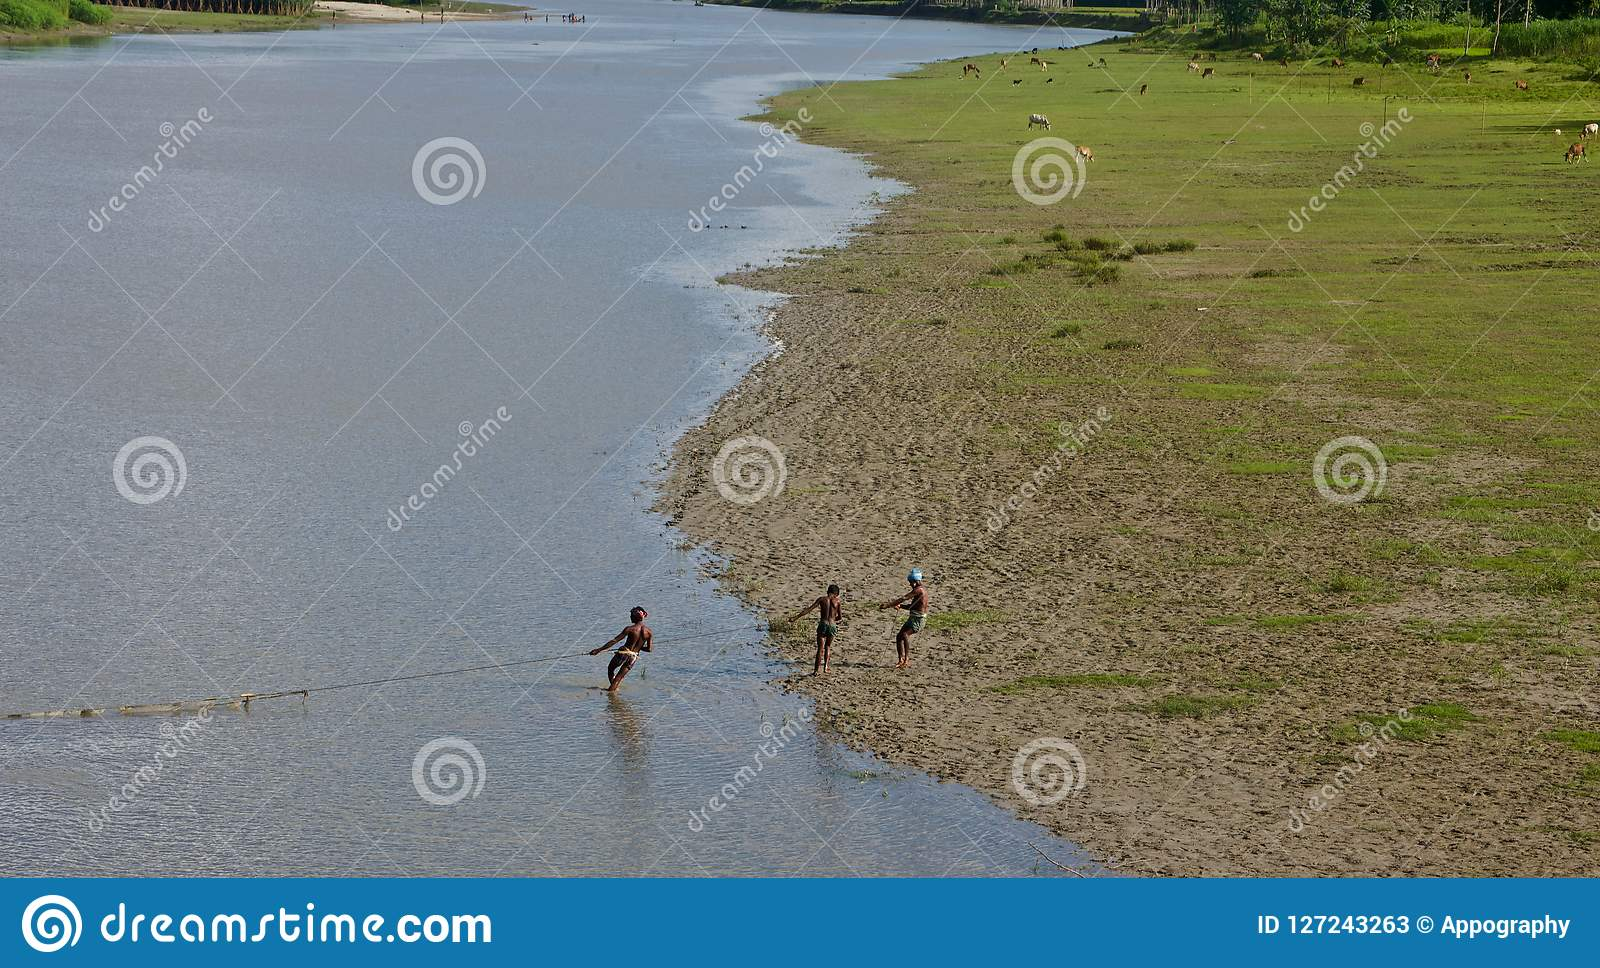 Fishermen working with a nets in the river unique photo